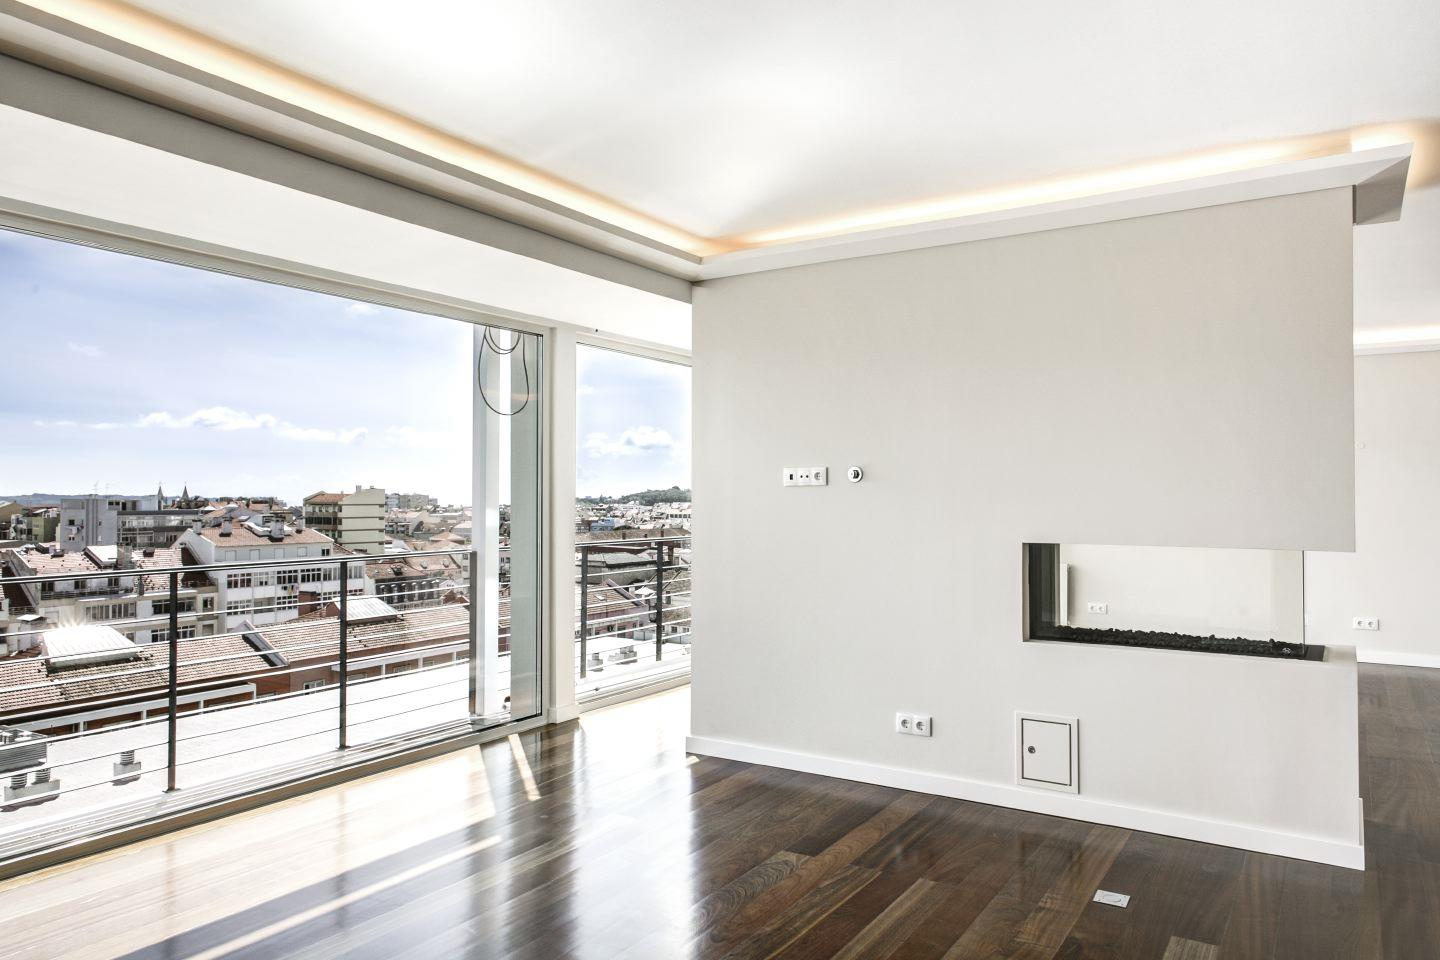 Apartamento para Venda às Flat, 3 bedrooms, for Sale Lisboa, Lisboa, 1250-086 Portugal